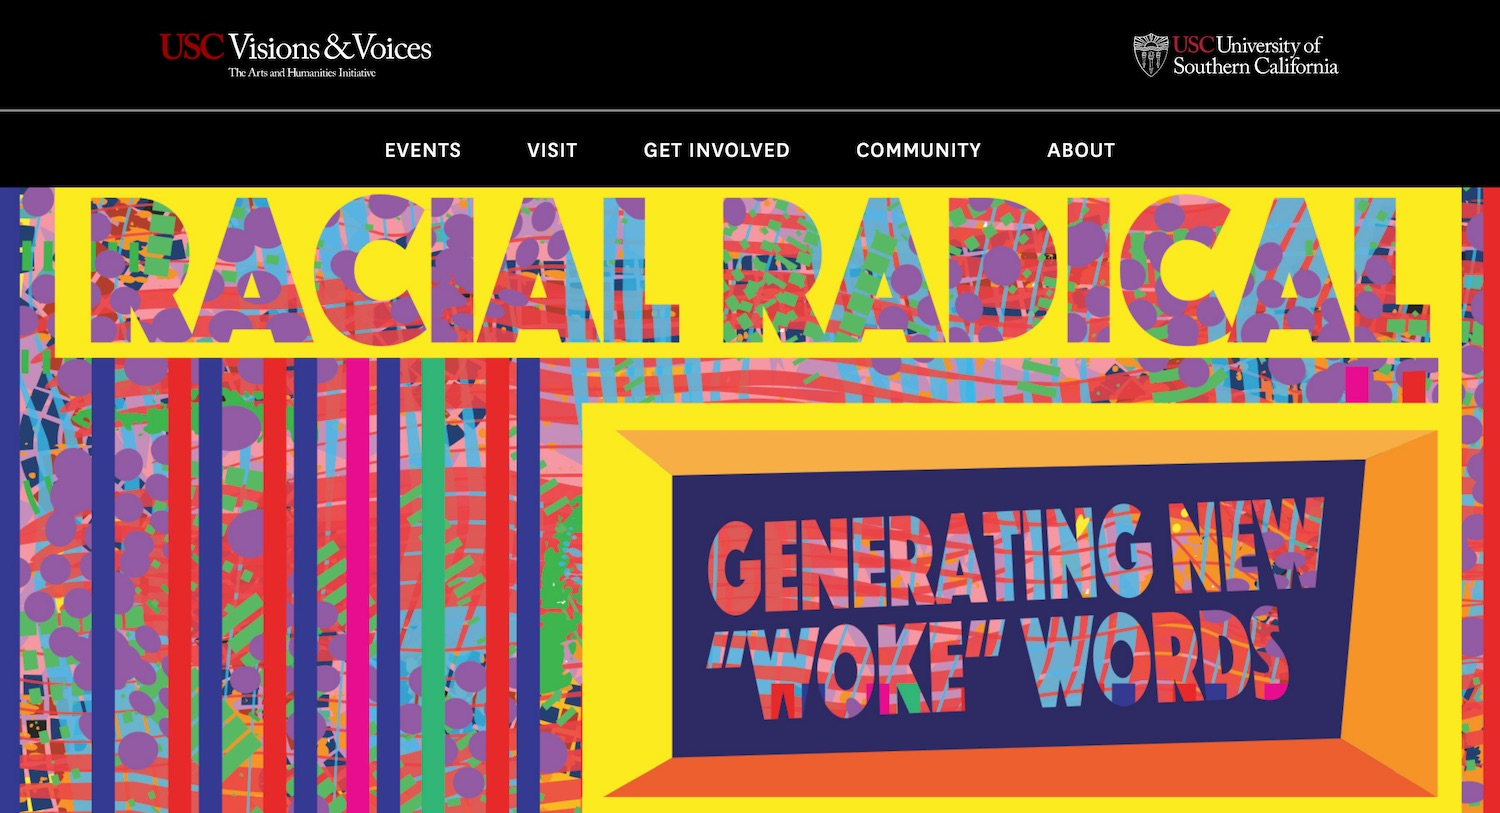 USC Visions & Voices Website - Higher Education Marketing Agency Los Angeles